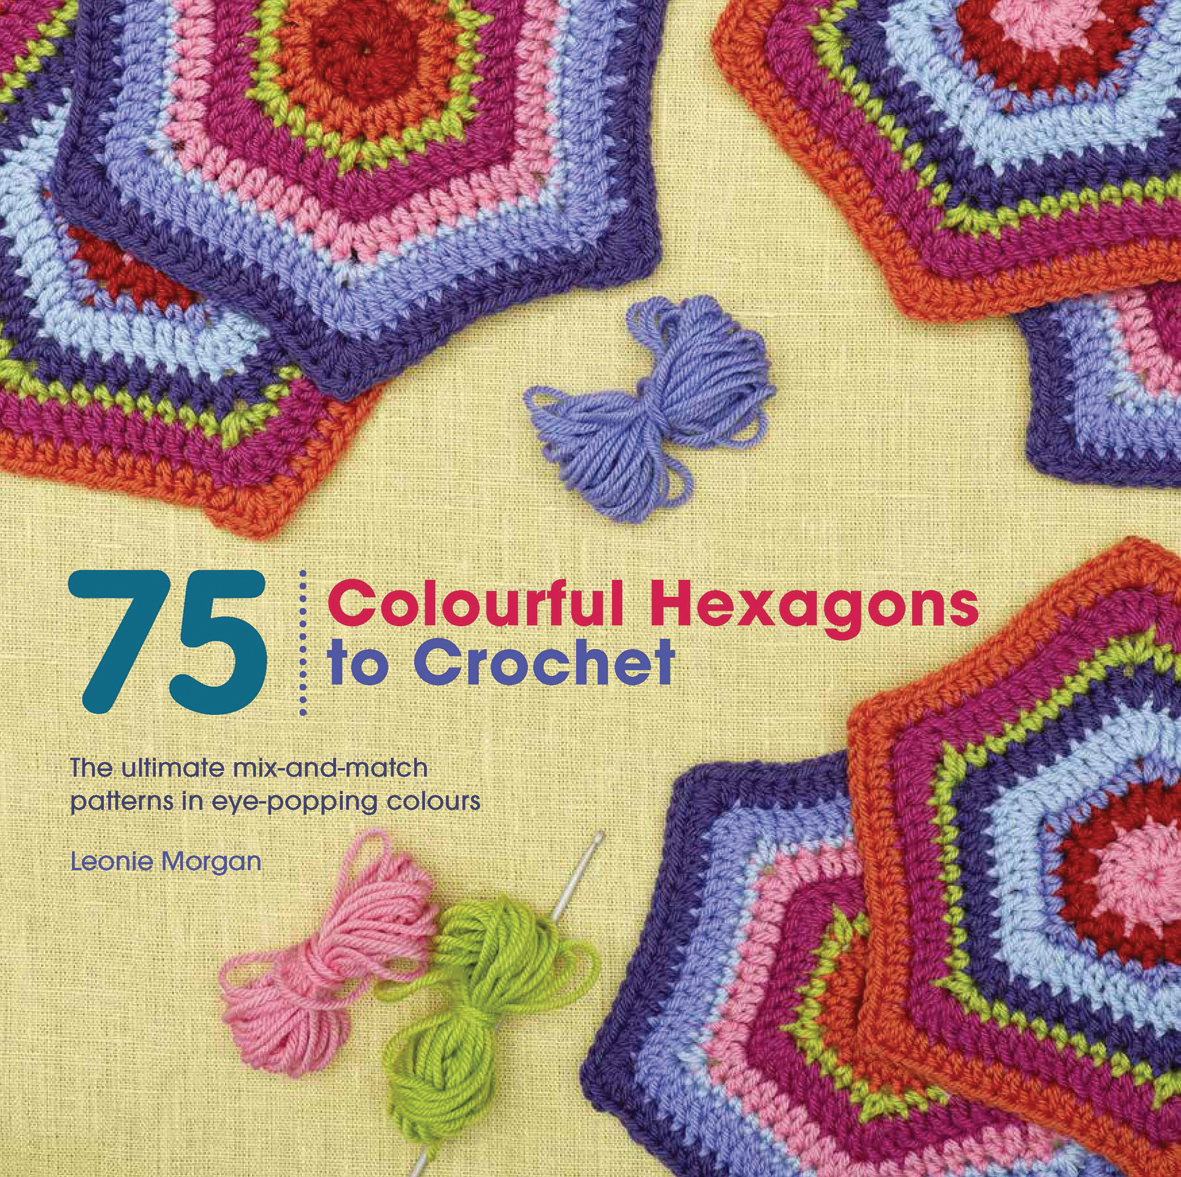 Search Press | 75 Colourful Hexagons to Crochet by Leonie Morgan